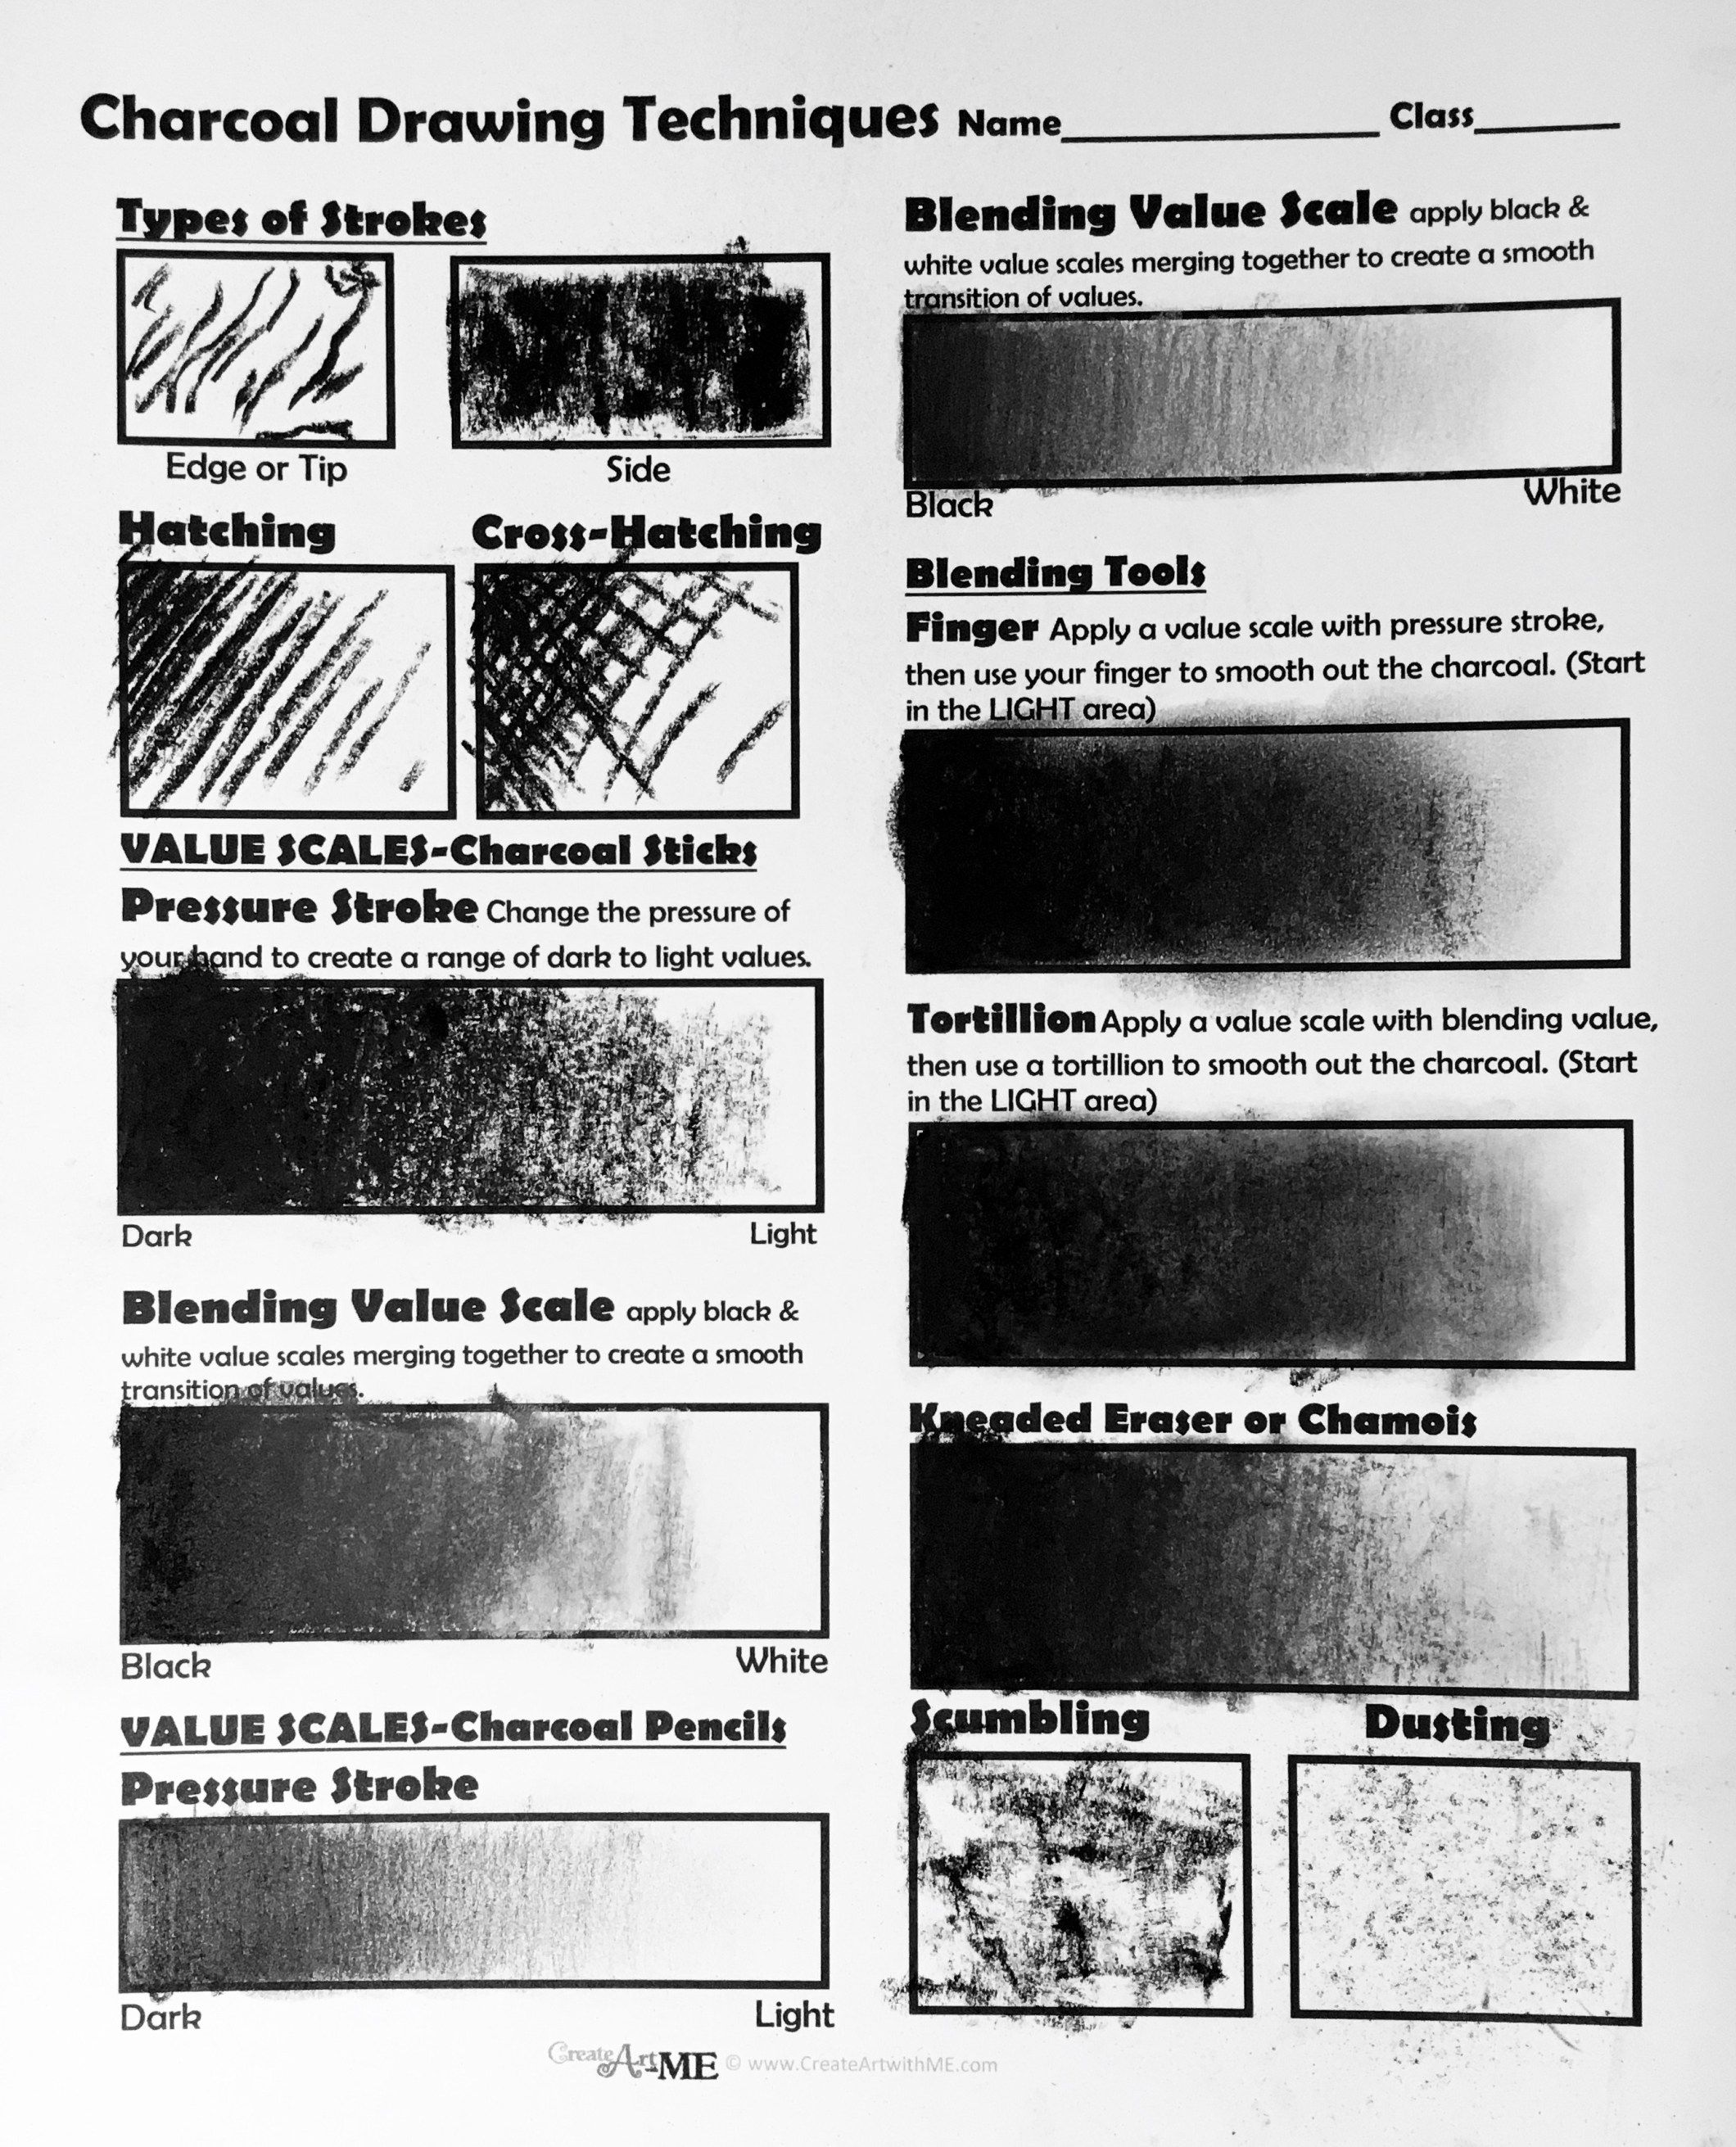 Charcoal Drawing Techniques Lesson Plan Amp Worksheet